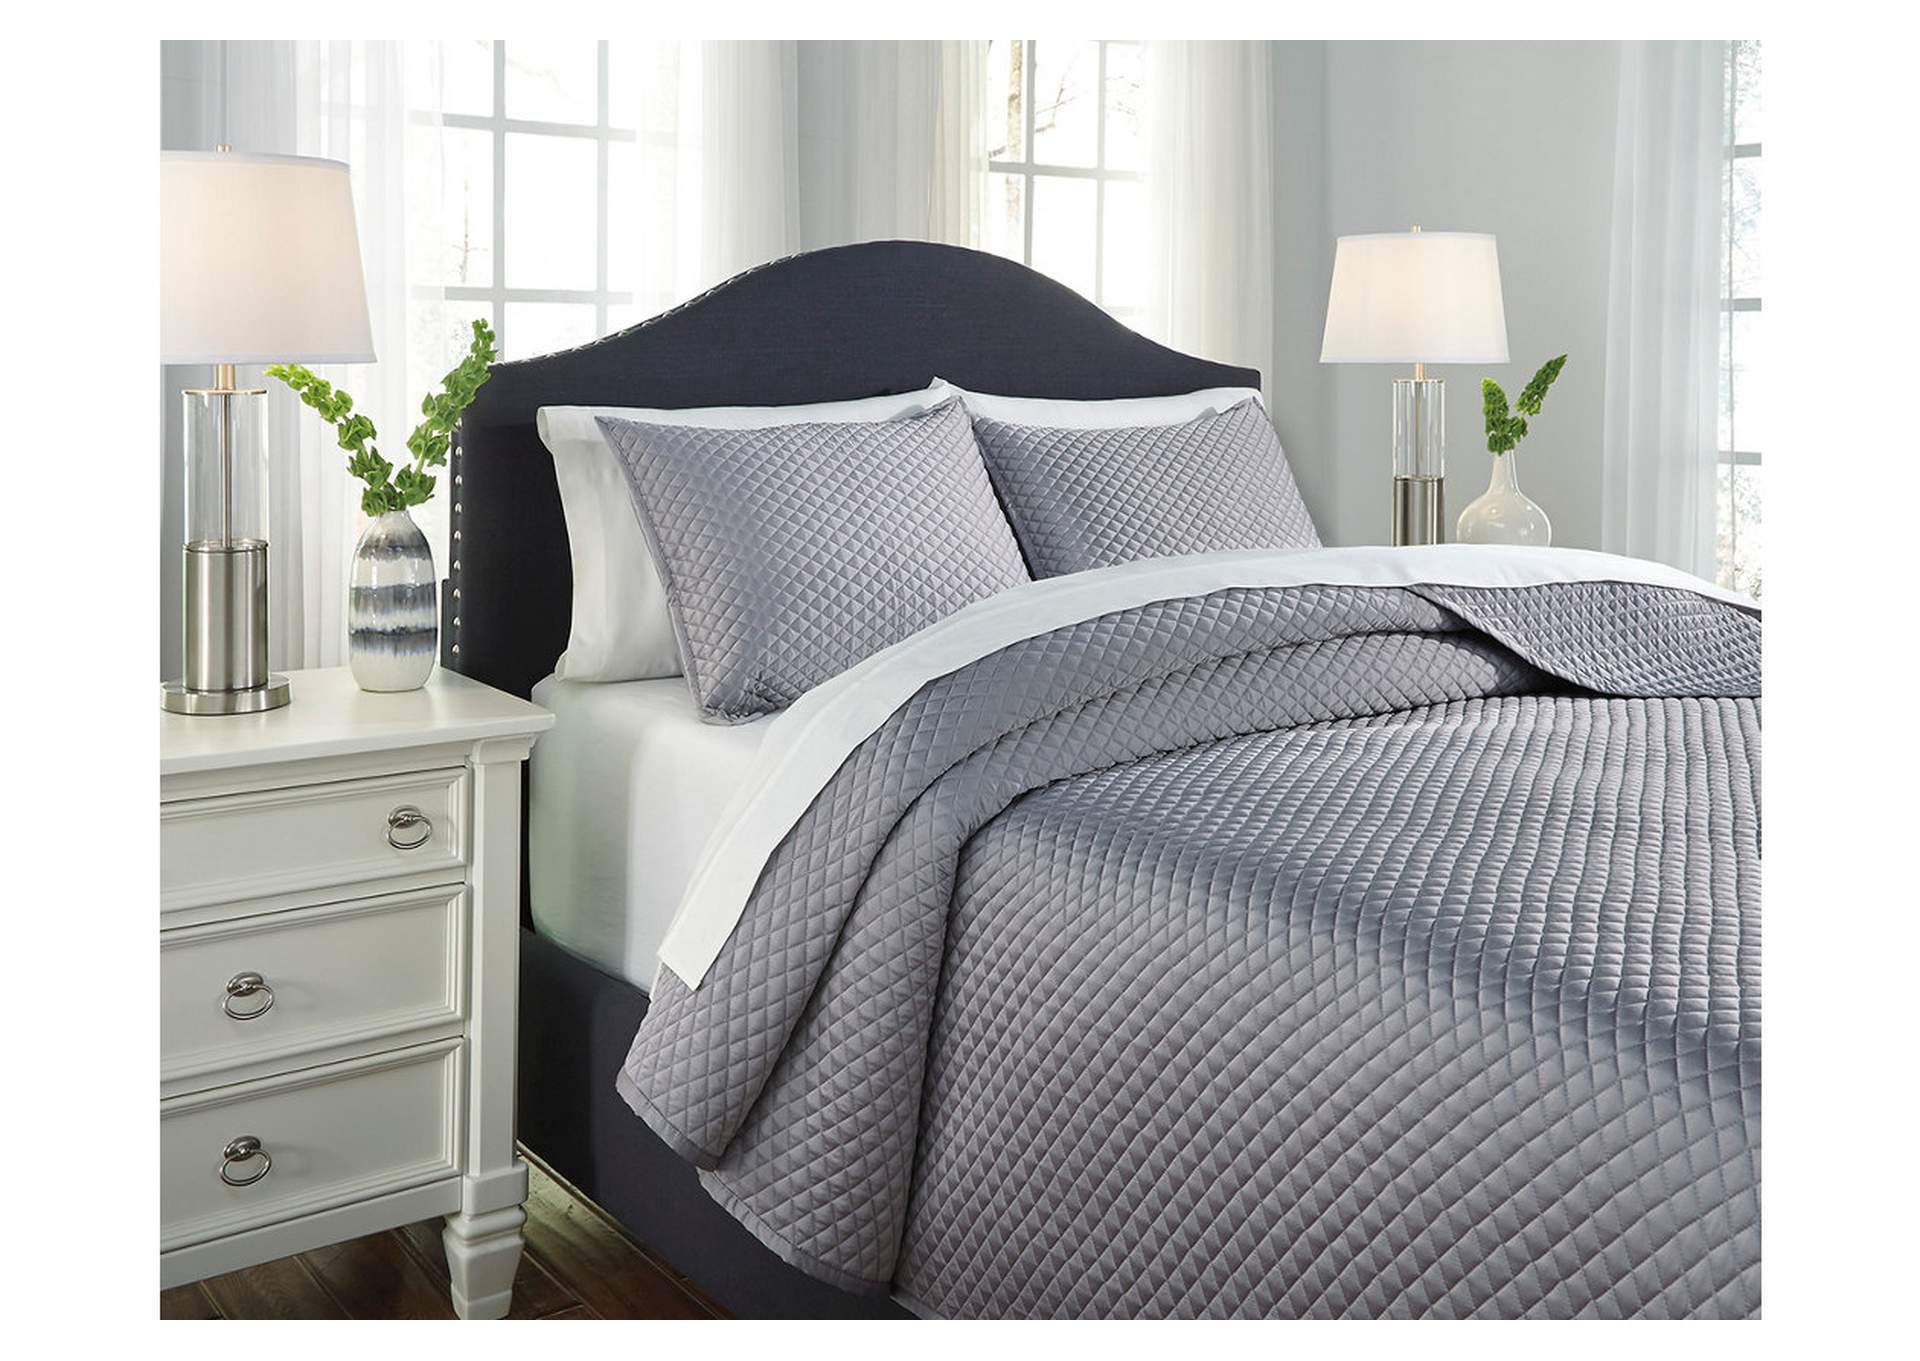 Dietrick Gray King Quilt Set,Signature Design By Ashley